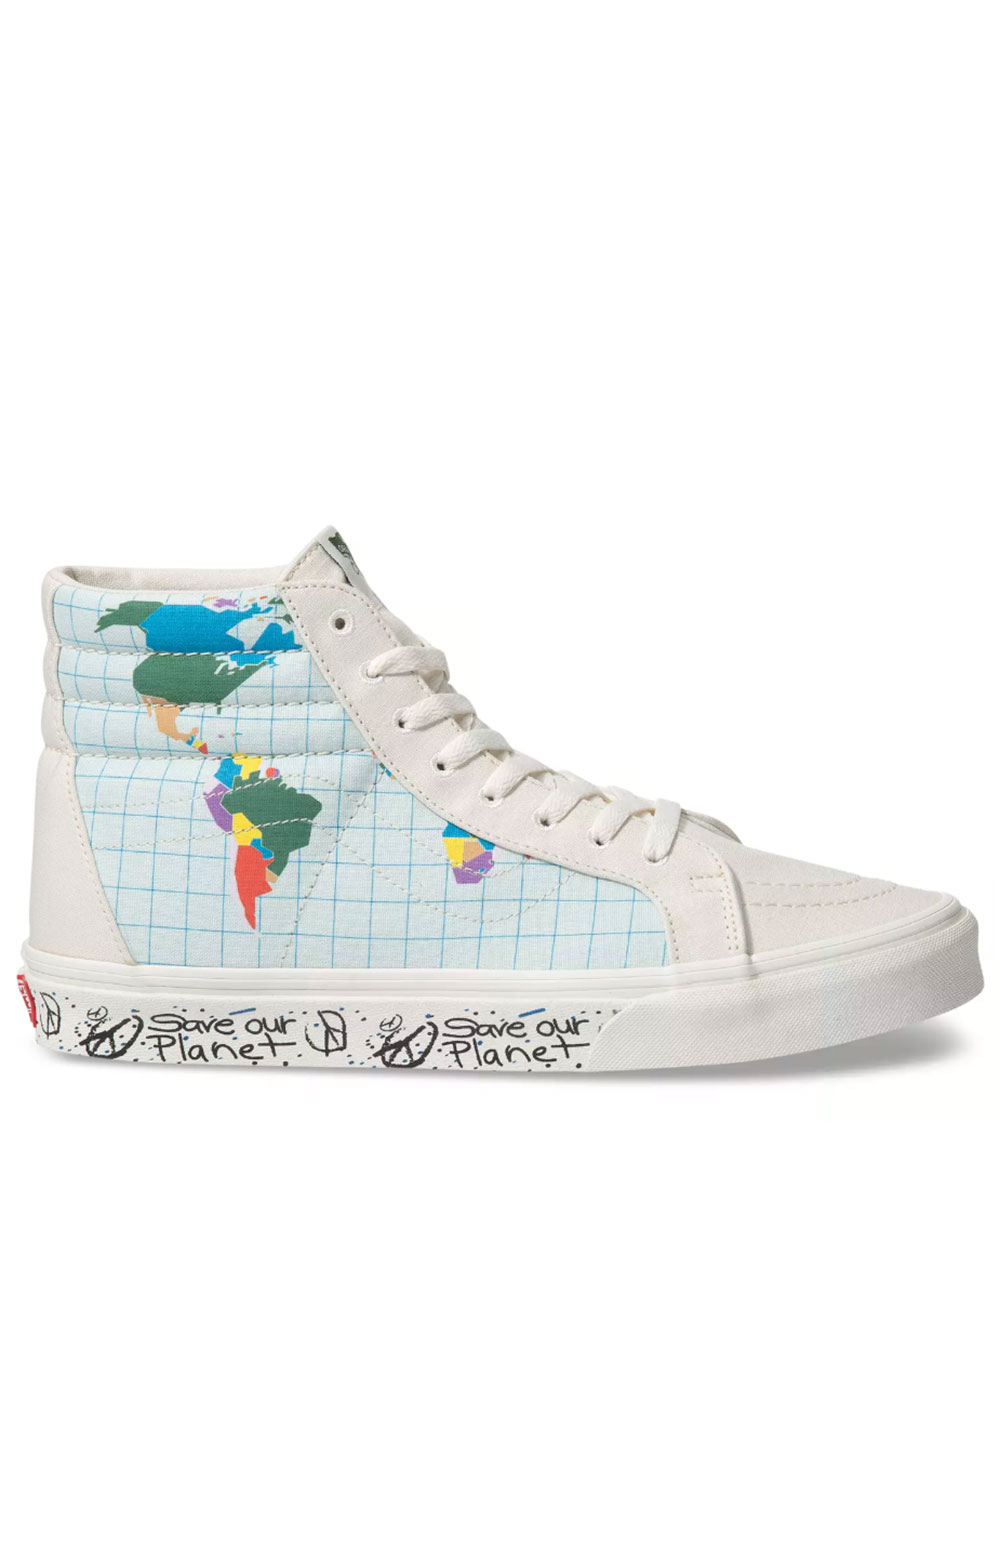 (BV4T2V) Save Our Planet Sk8-Hi Shoe - Classic White/Multi